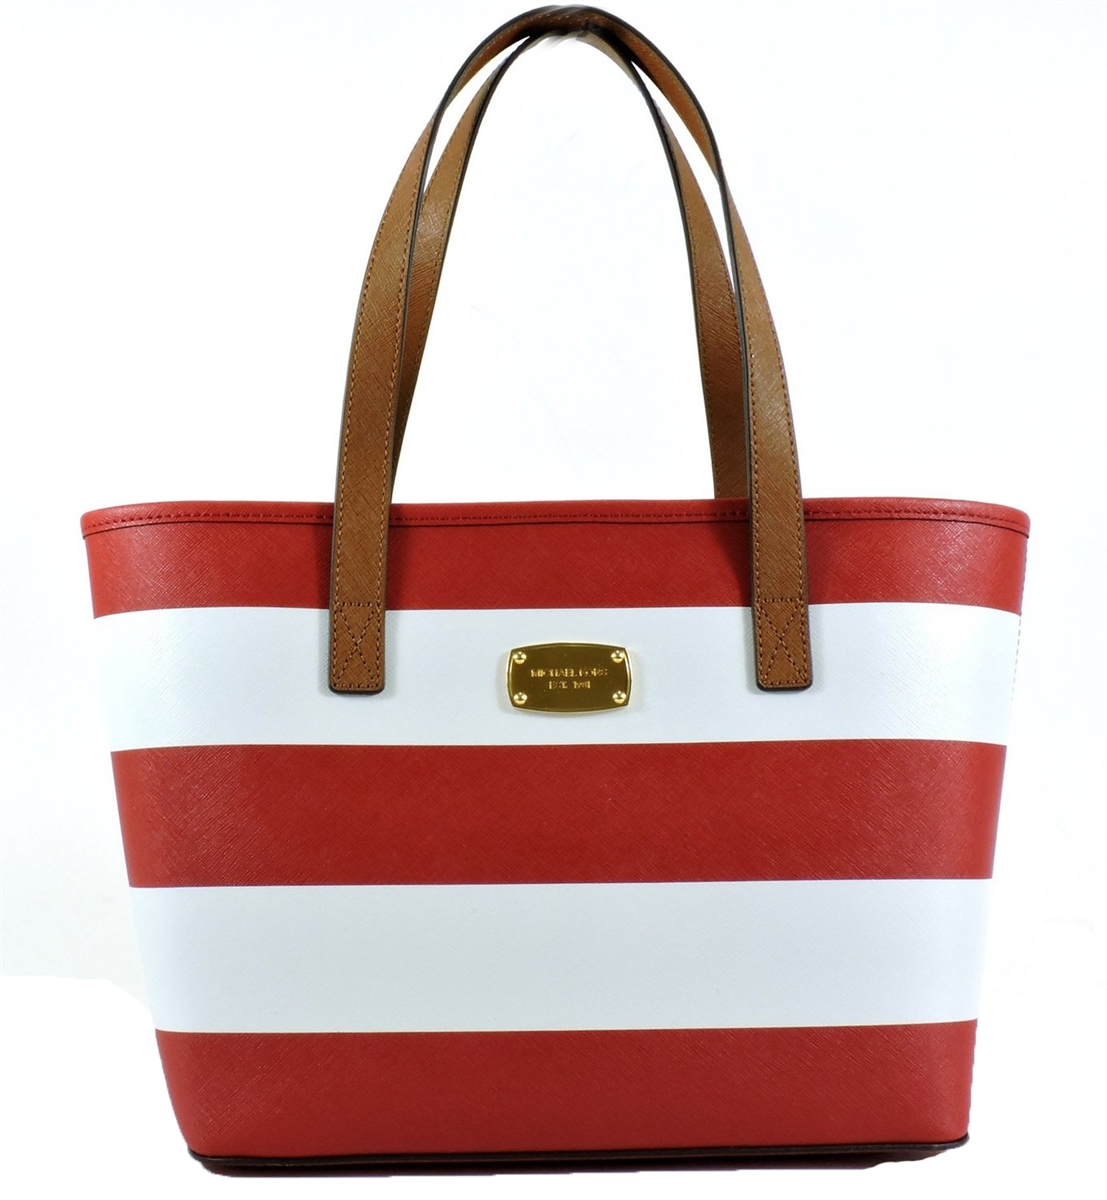 1d8ed38081ba Buy jet set saffiano tote > OFF62% Discounted